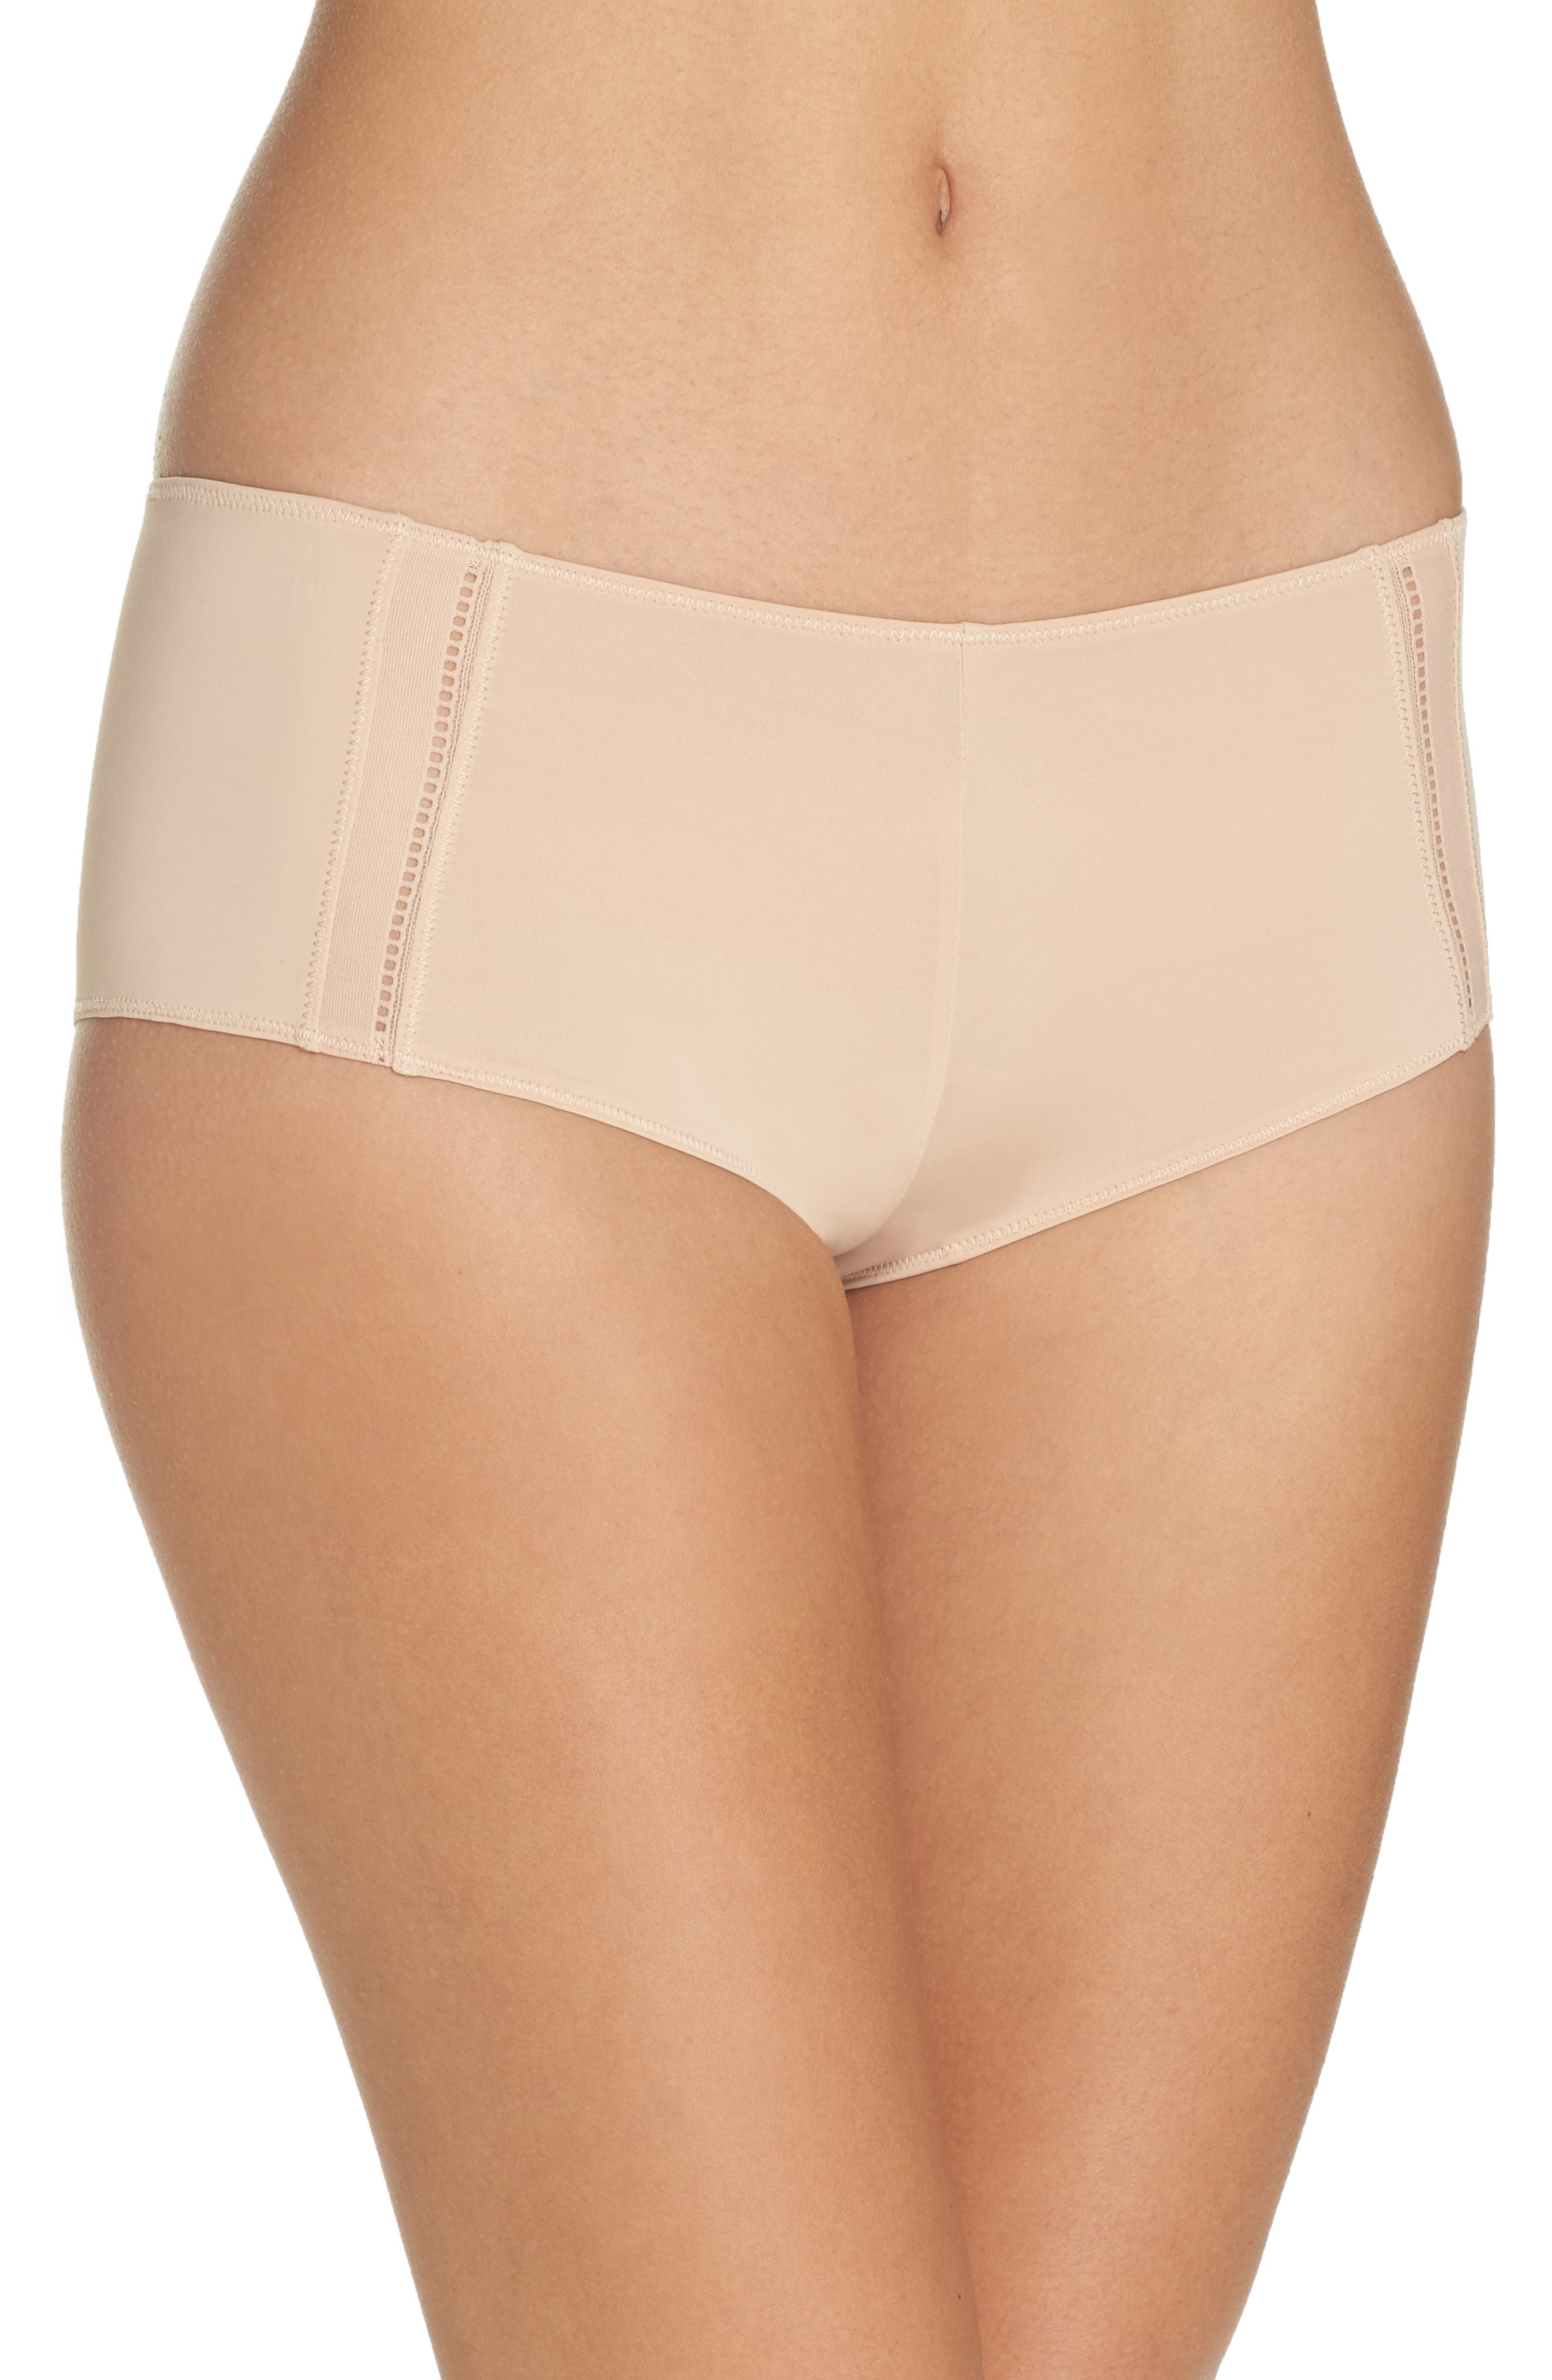 Alternate Image 1 Selected - Free People Intimately FP Truth or Dare Boyshorts (3 for $33)